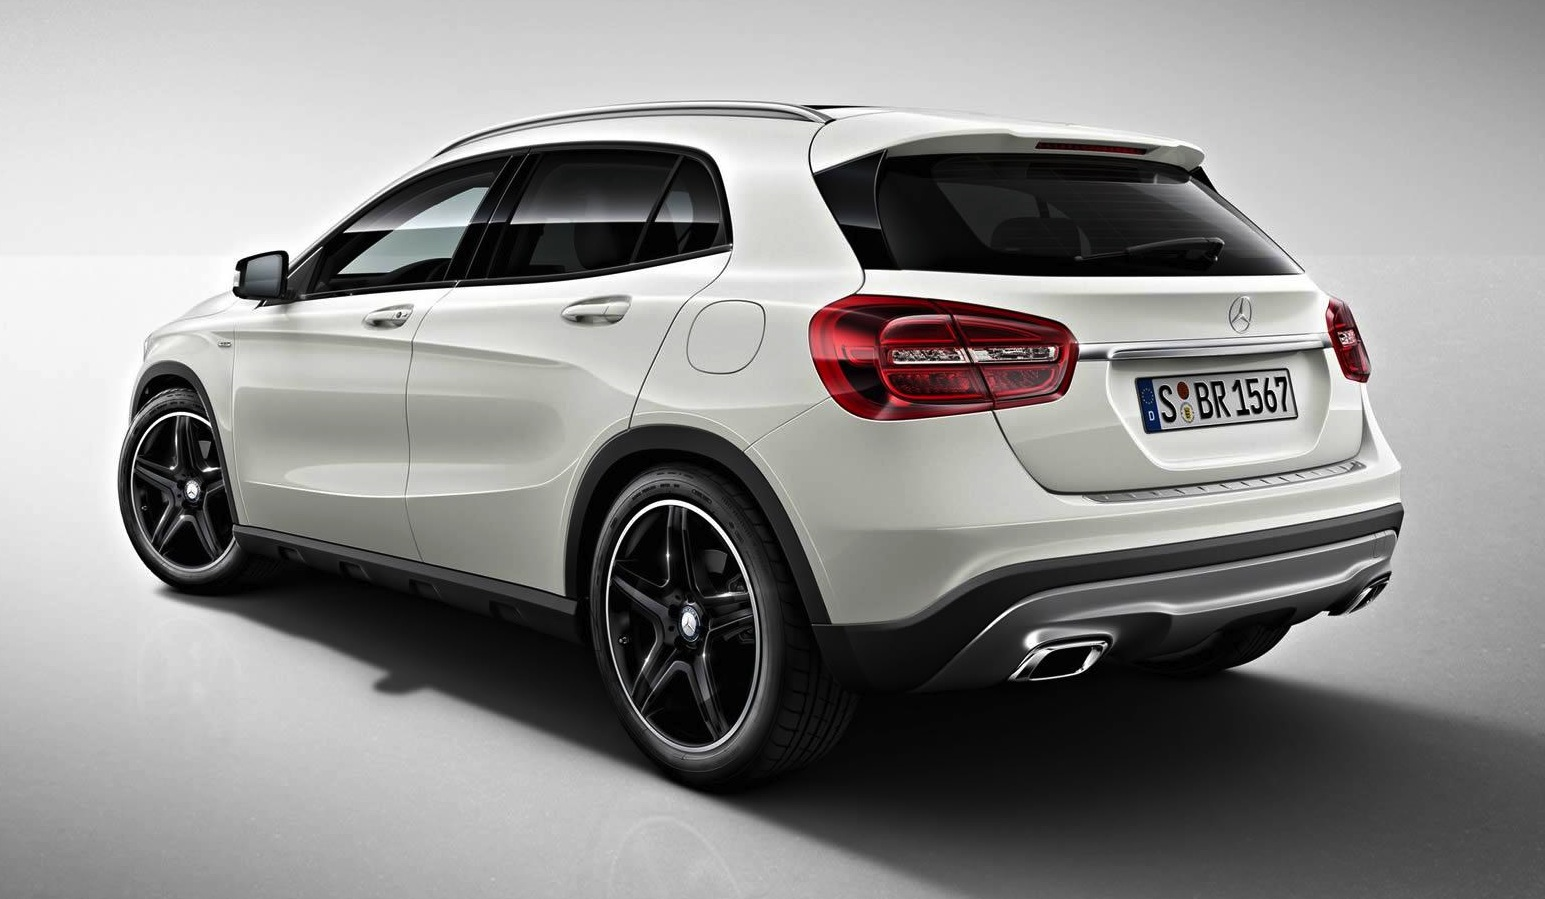 Classe A Gla Mercedes Mercedes-benz Gla Edition 1: Limited Edition Compact Suv